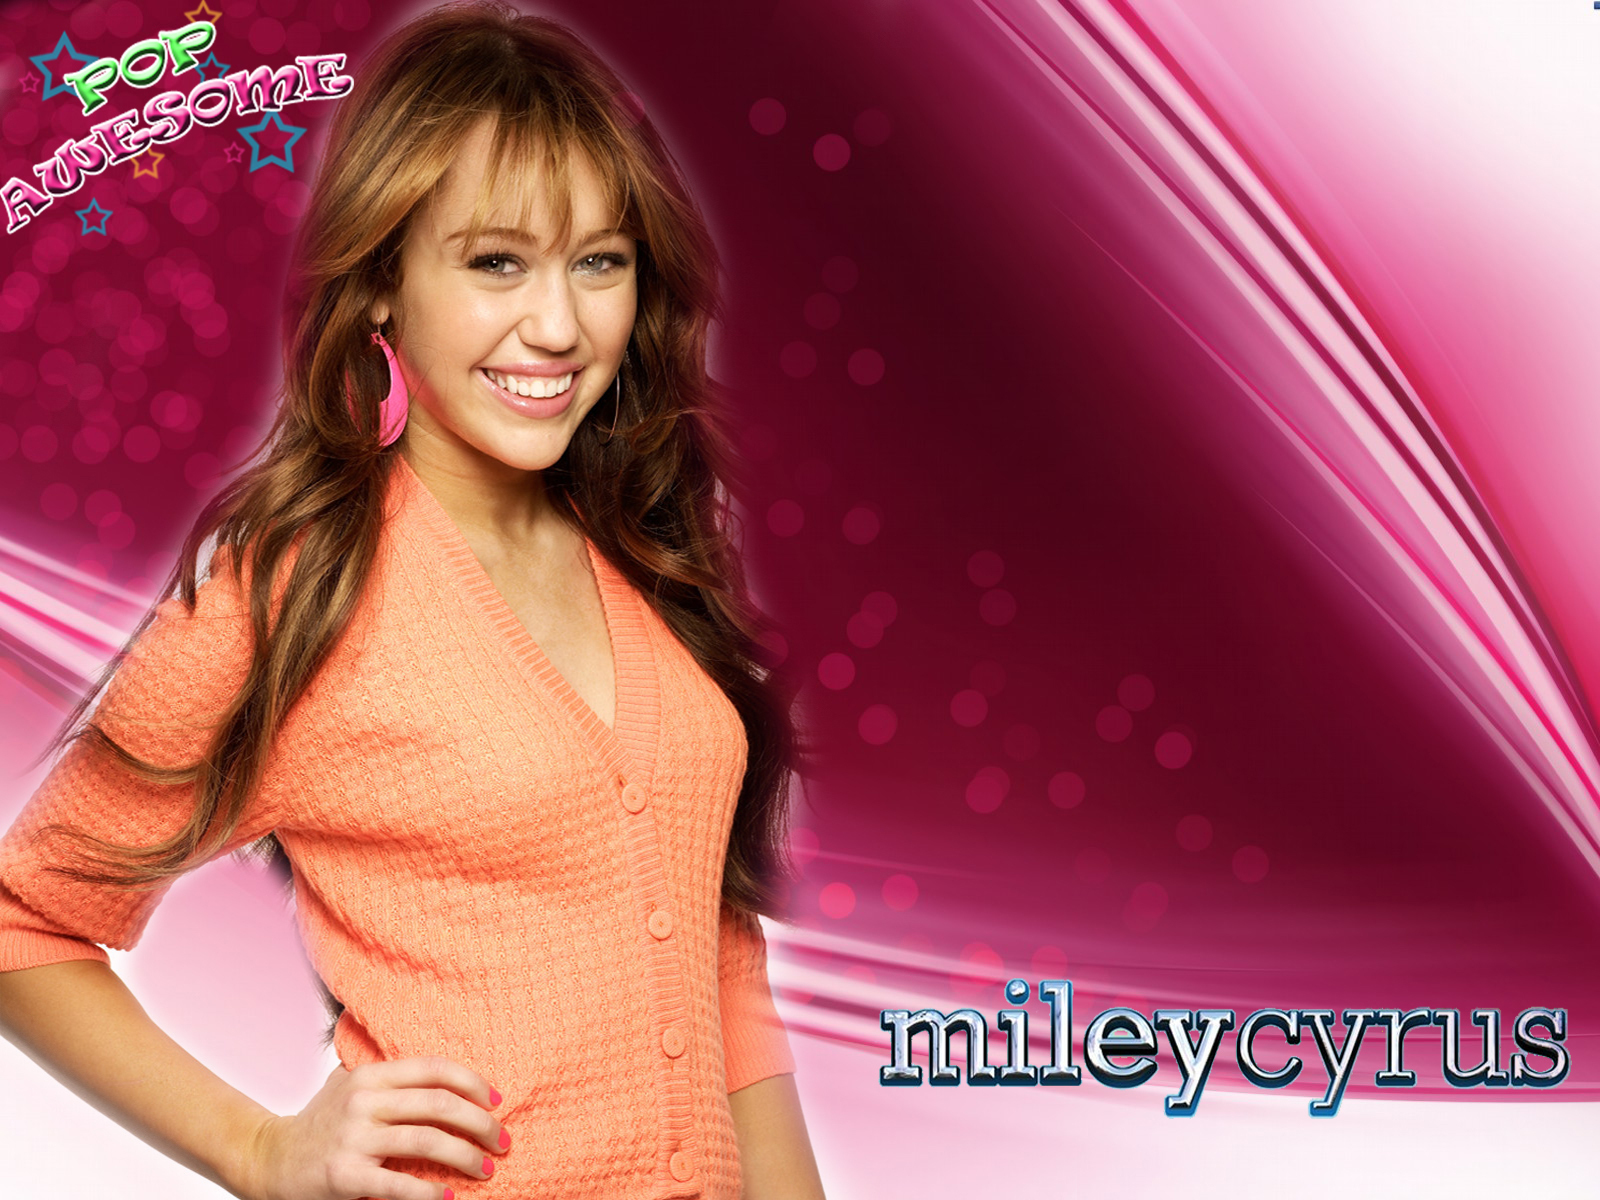 Beautiful Celebrities Images: Miley Cyrus Desktop Wallpapers